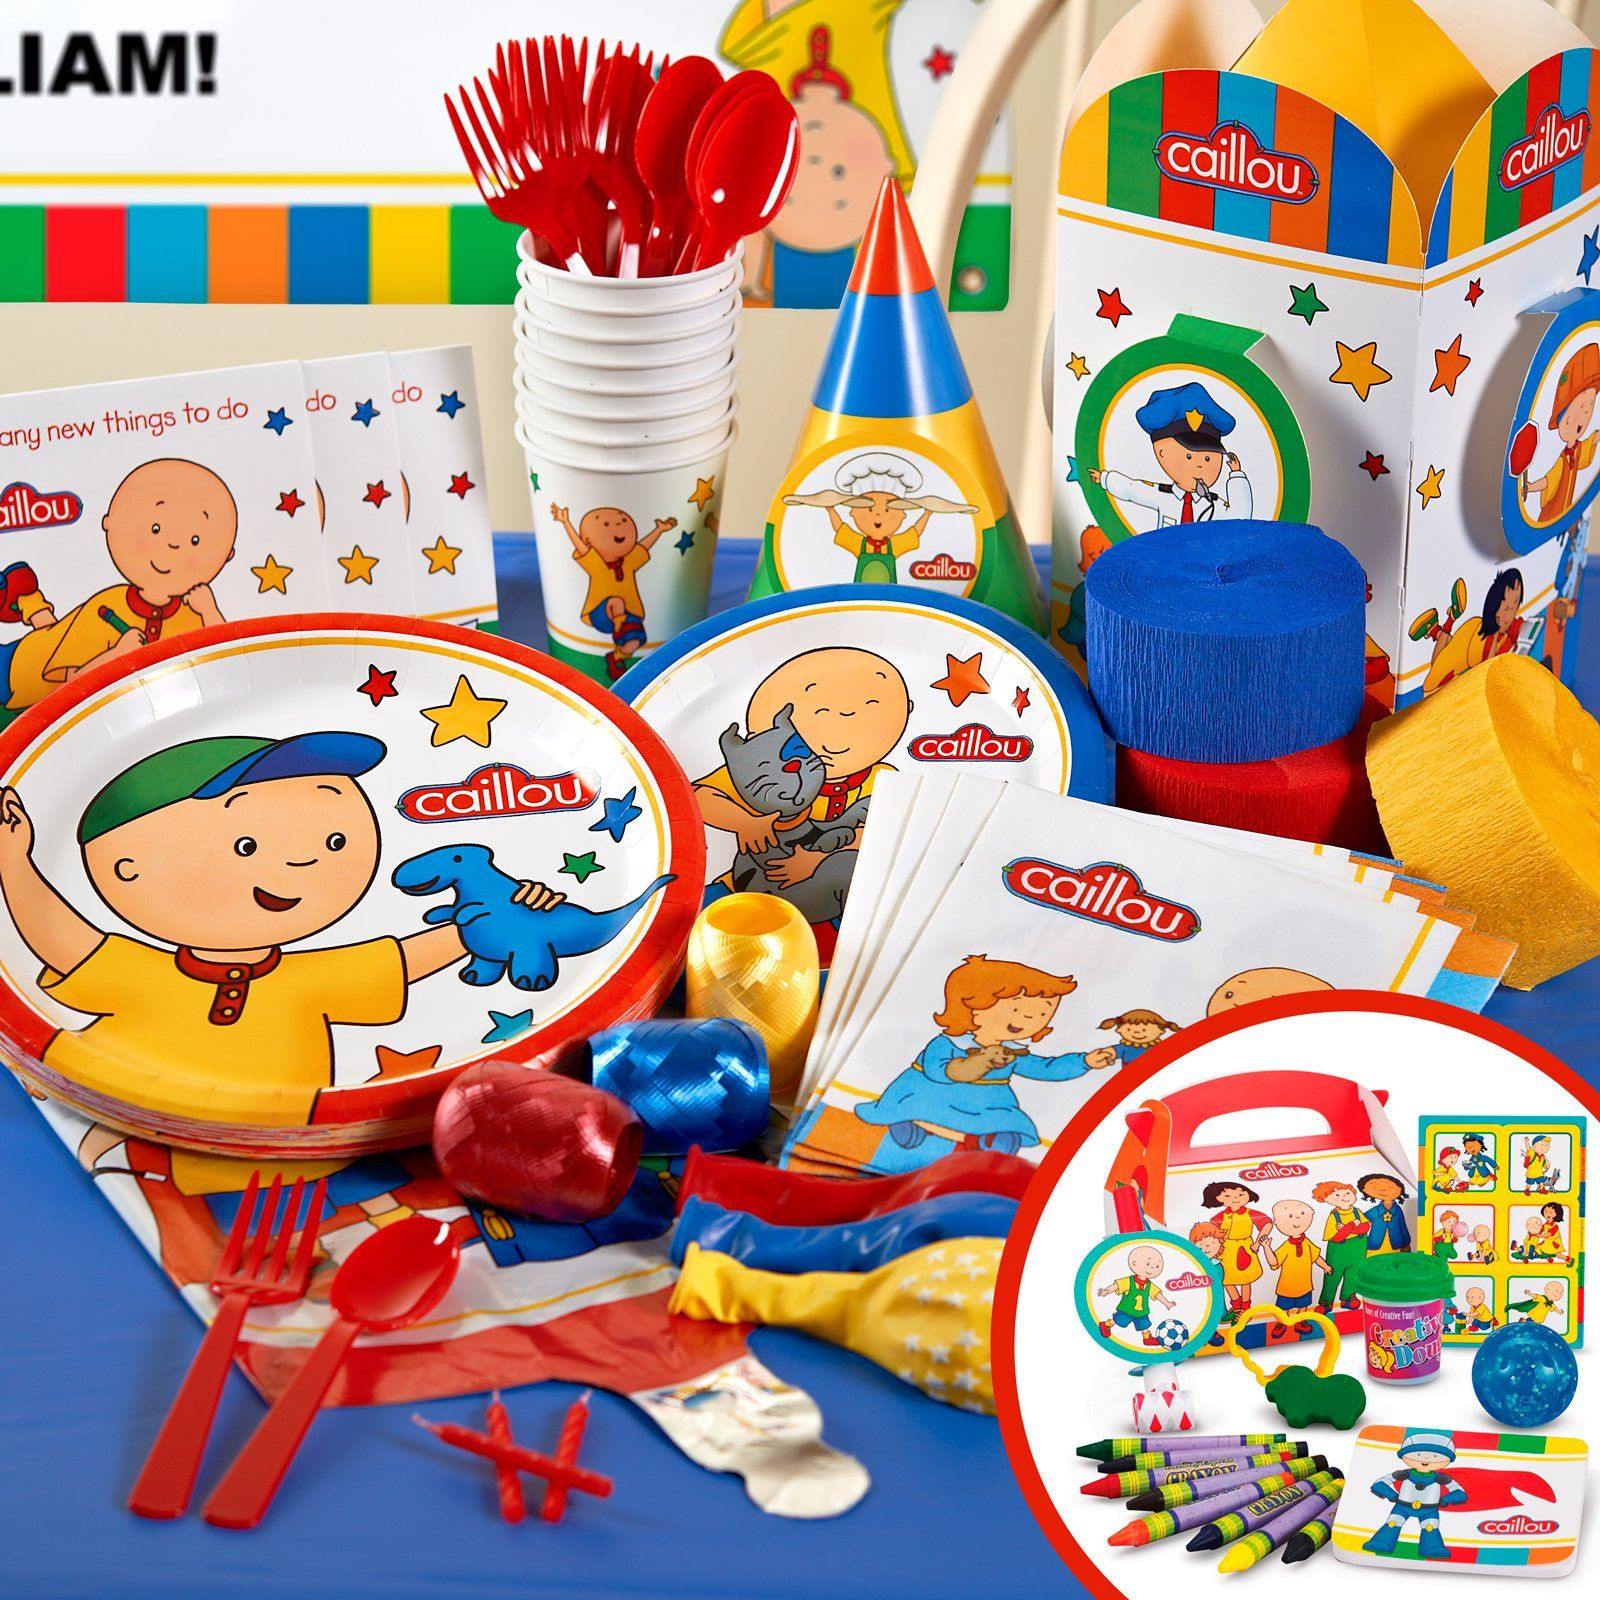 Caillou Birthday Decorations  Caillou Birthday Party Supplies